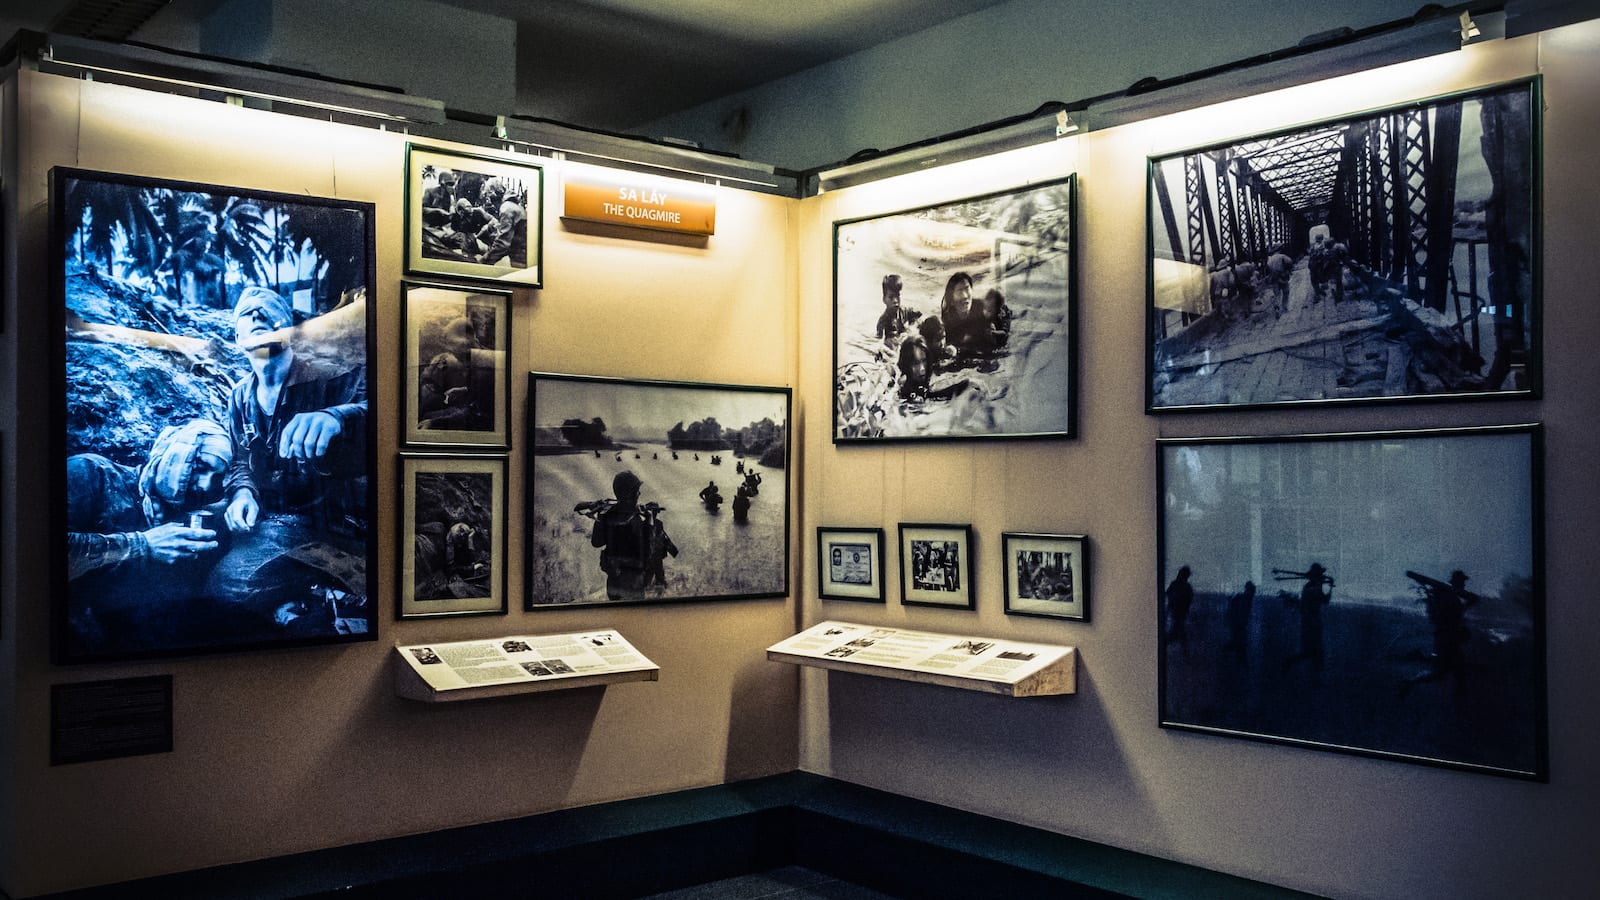 One of the exhibits inside the War Remnants Museum in Saigon